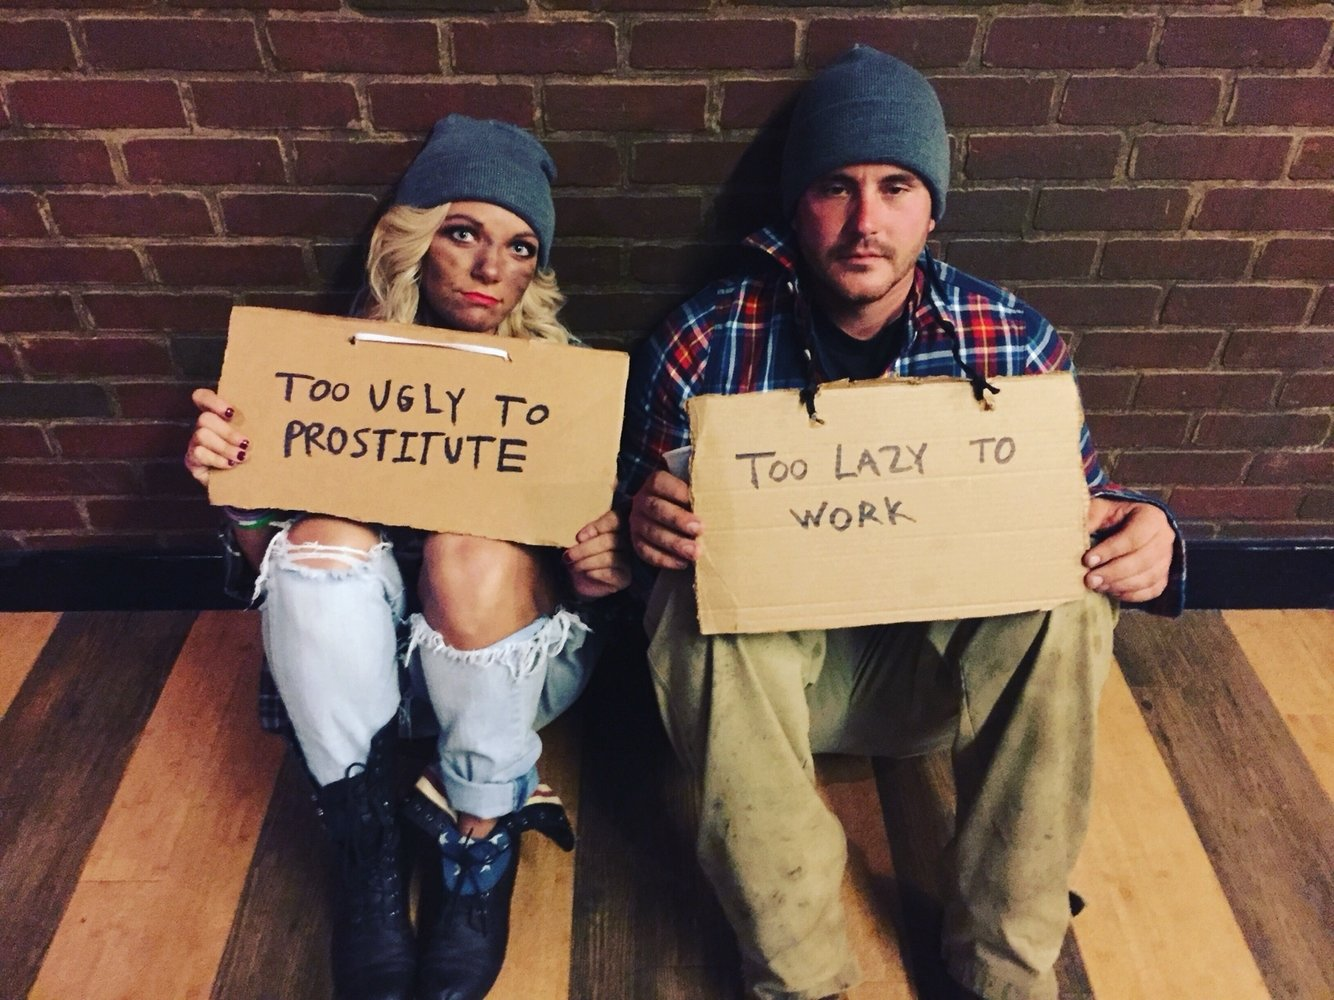 10 Famous Creative Halloween Costume Ideas For Couples funny couples costumes holidays pinterest funny couple 9 2020